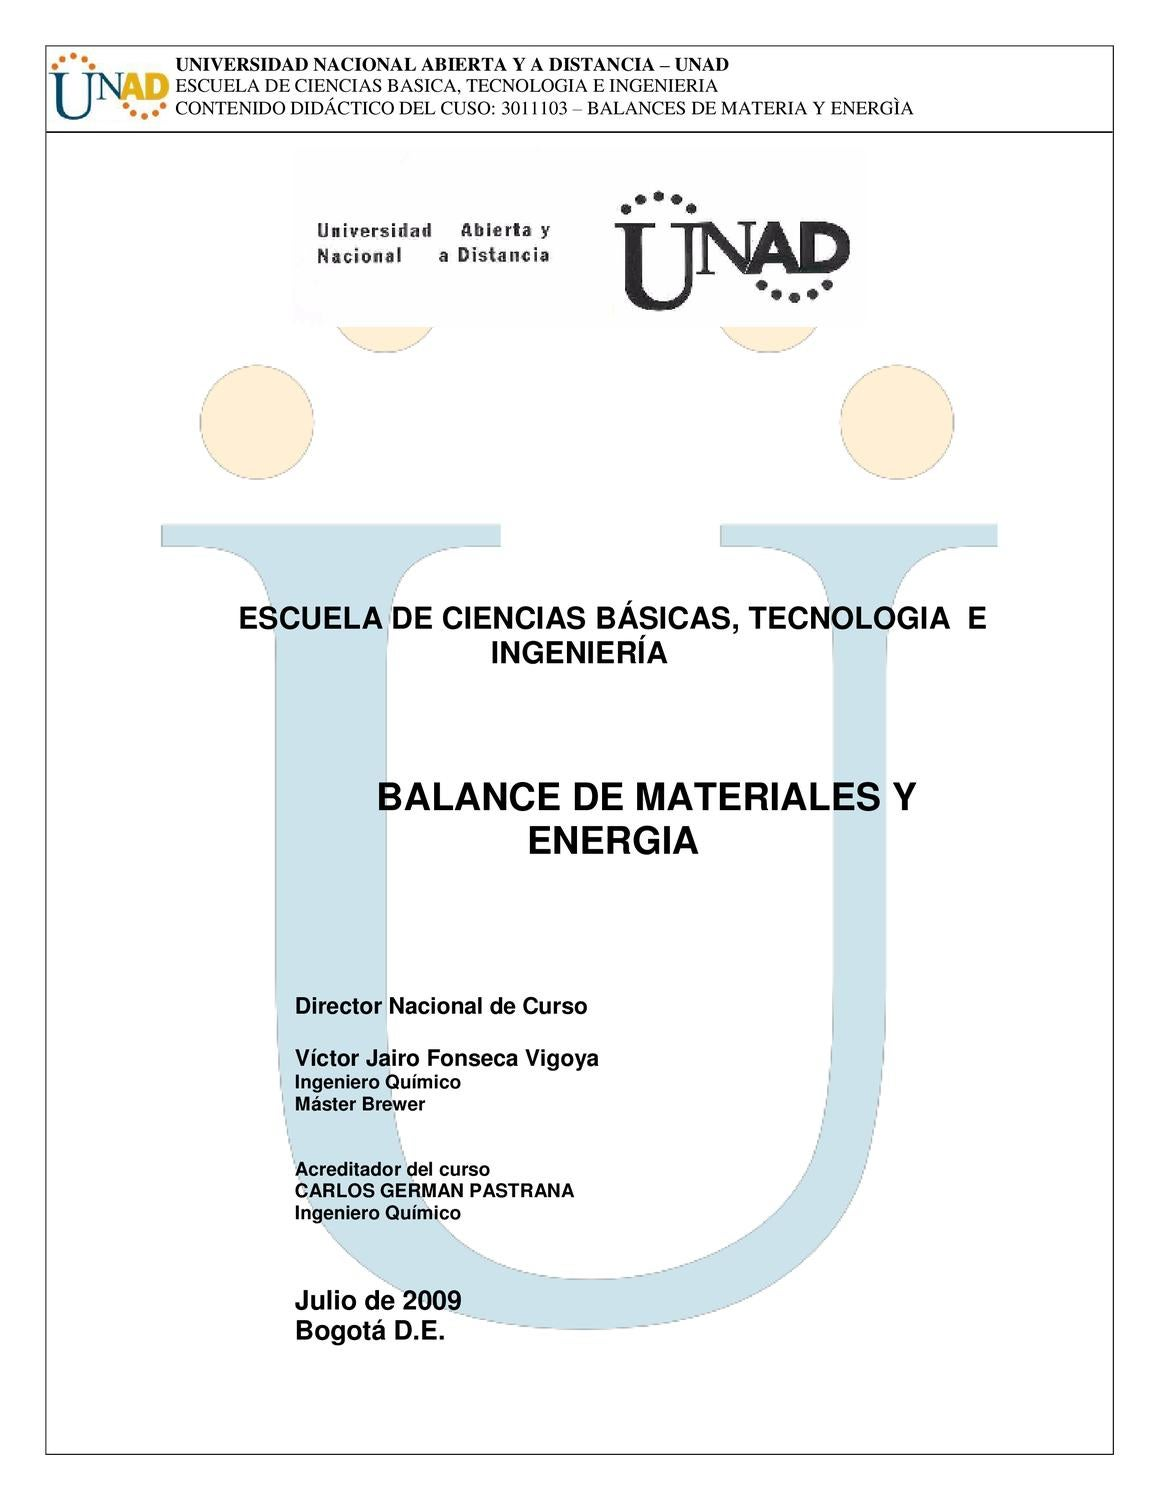 Balance de Materiales y Energia by victor fonseca - issuu